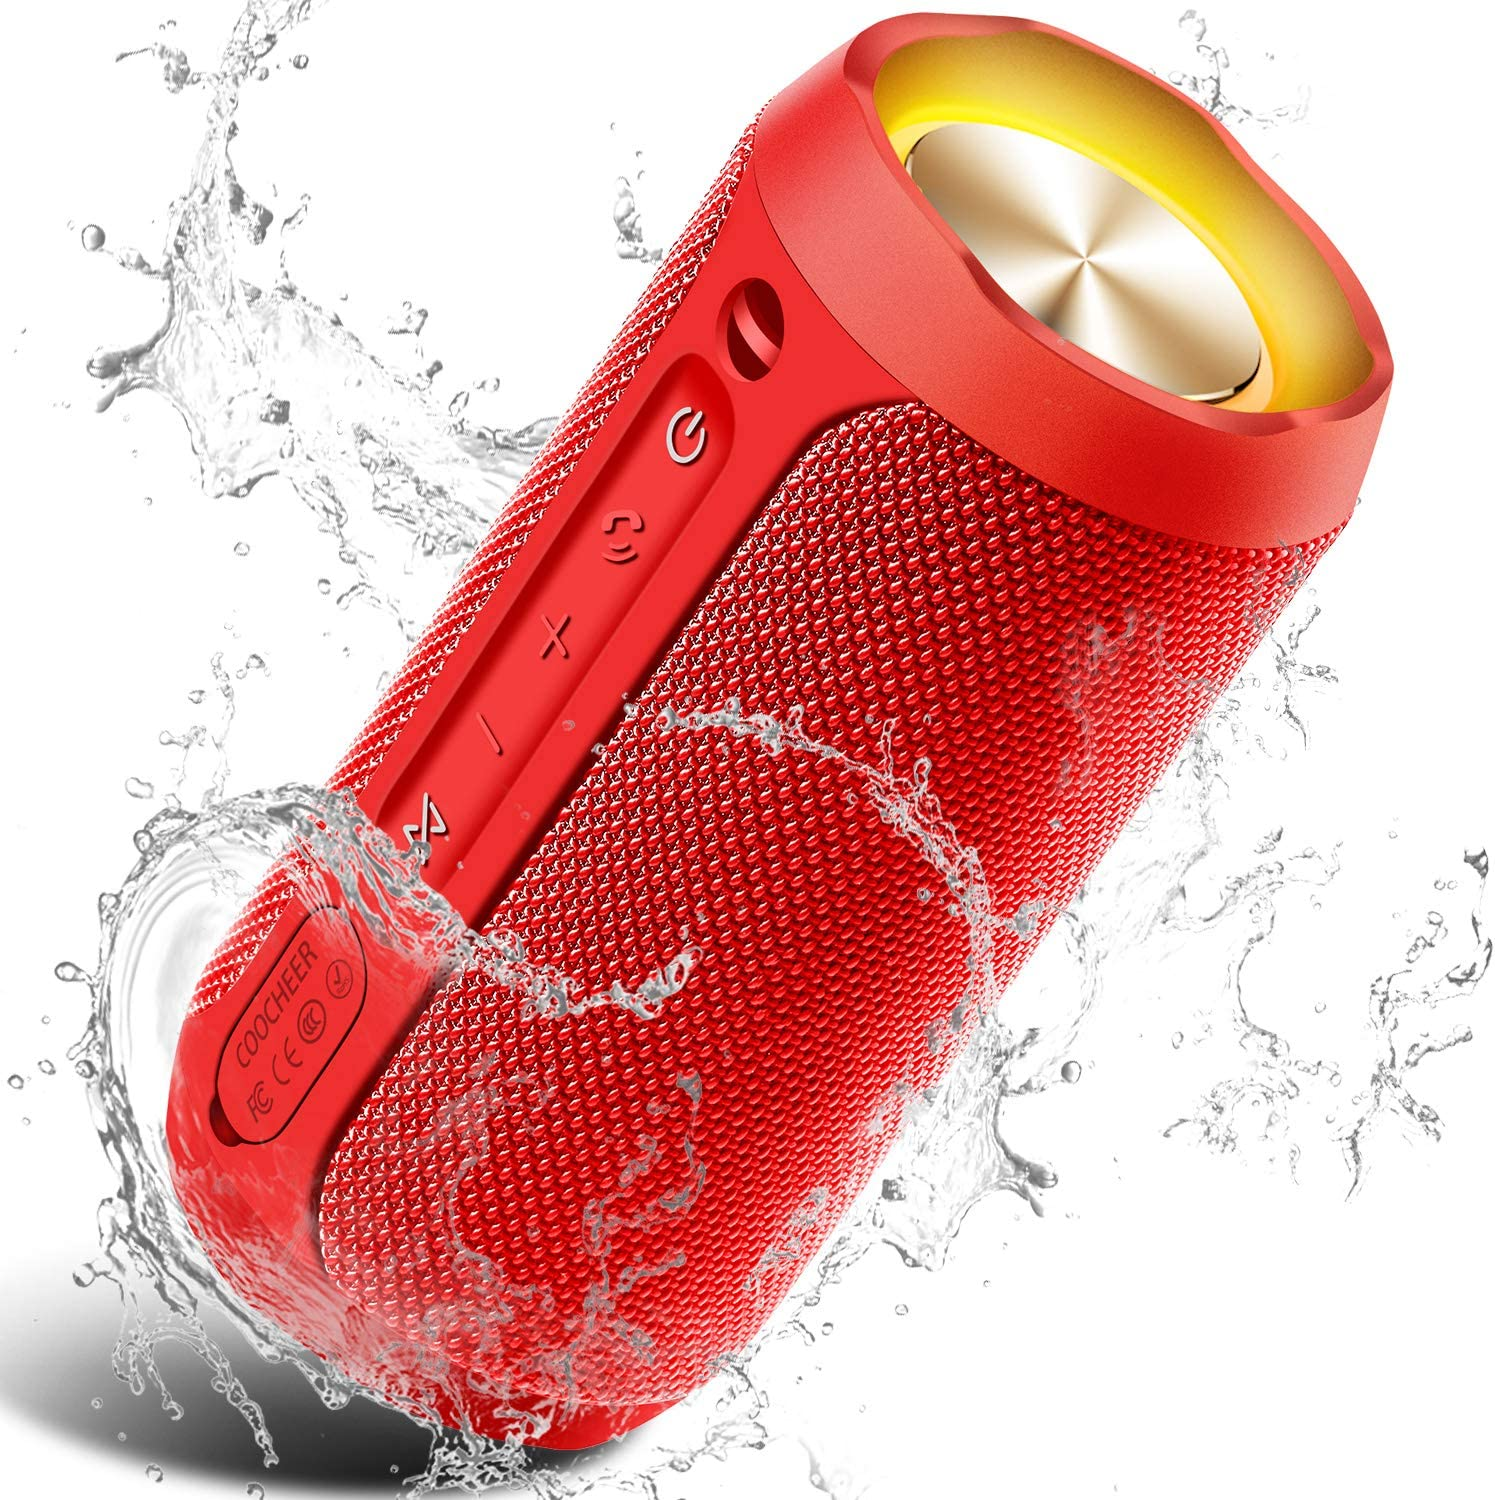 Wireless Speaker Bluetooth, COOCHEER 24W Bluetooth Portable Speaker with Party Light, IP67 Waterproof Portable Wireless Speakers for Outdoor, TWS, 20+Hour Playtime, Built-in mic,Dustproof-Red